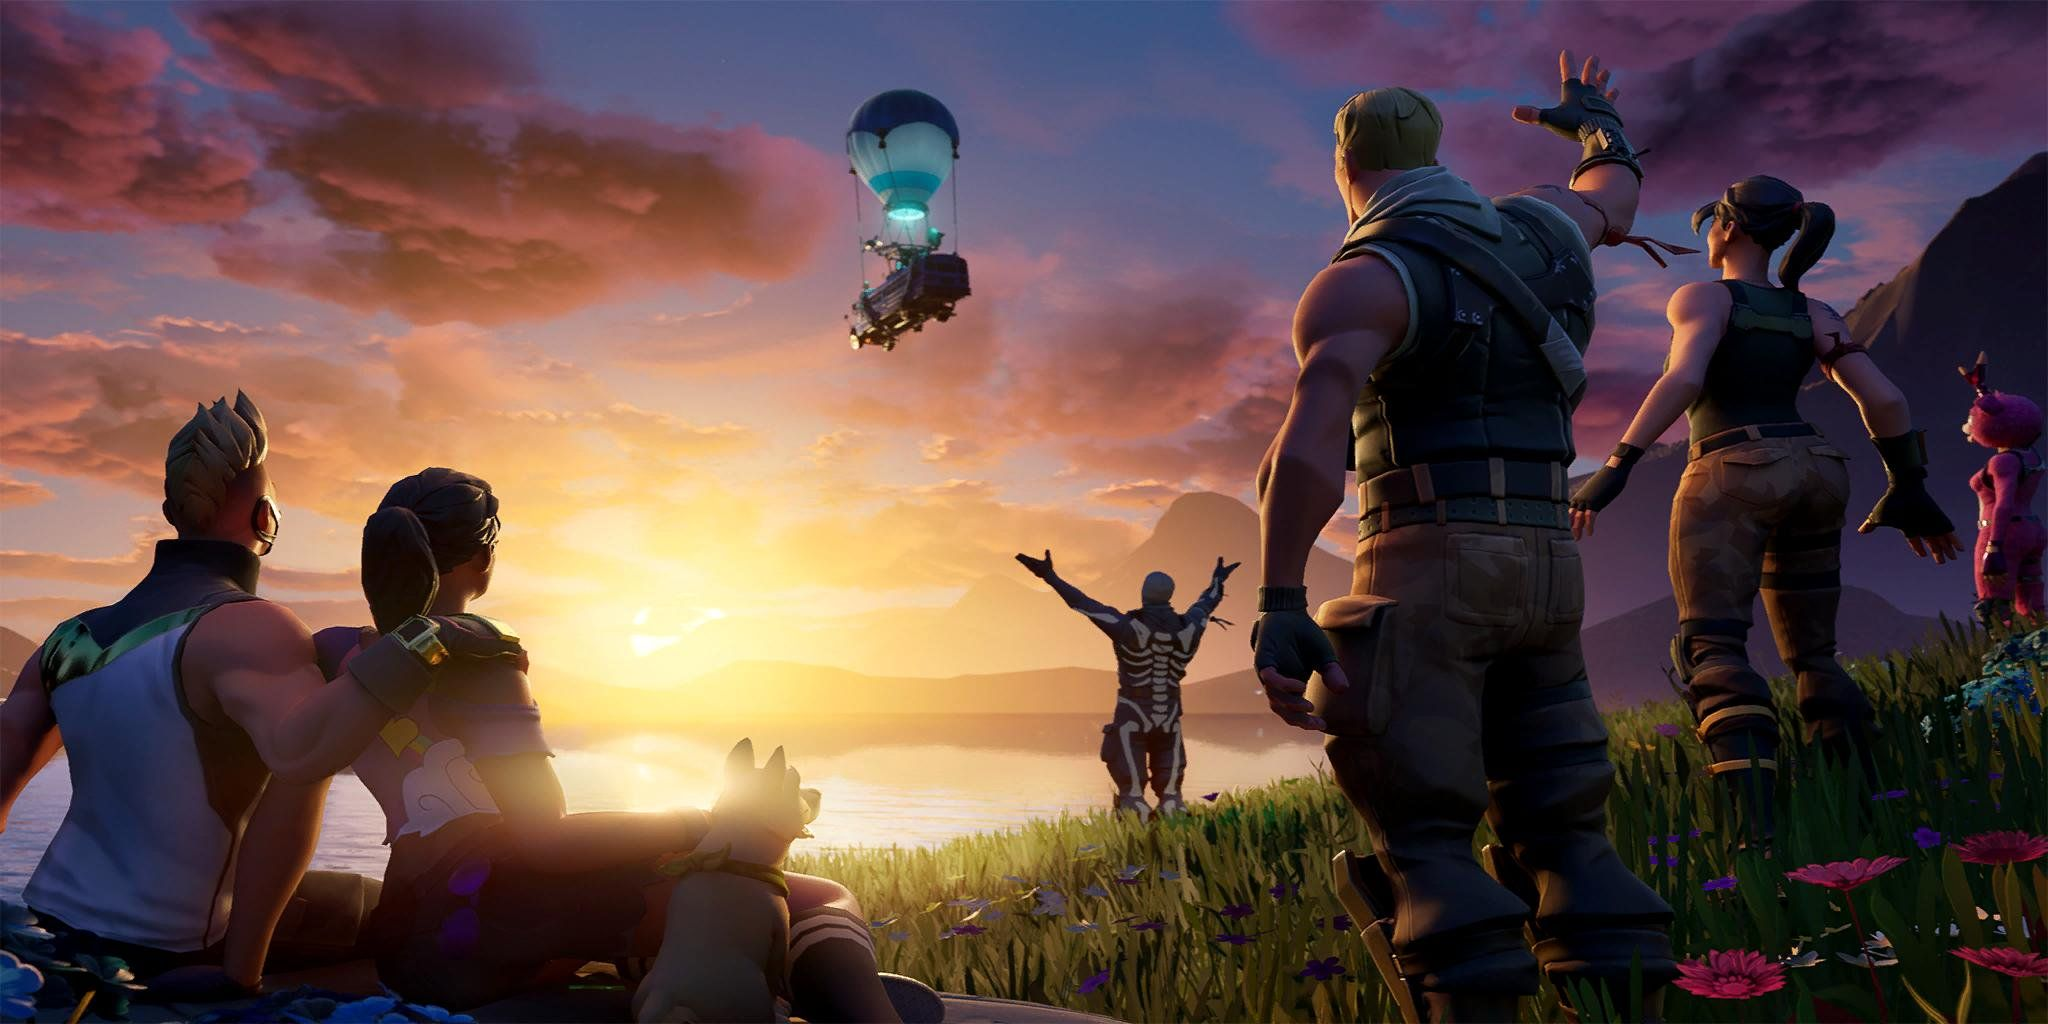 When Does Fortnite Season 10 End Season 11 Start Possible Rocket Launch Live Event Time And Date Epic Games H Fortnite Season 11 Epic Games Fortnite Fortnite